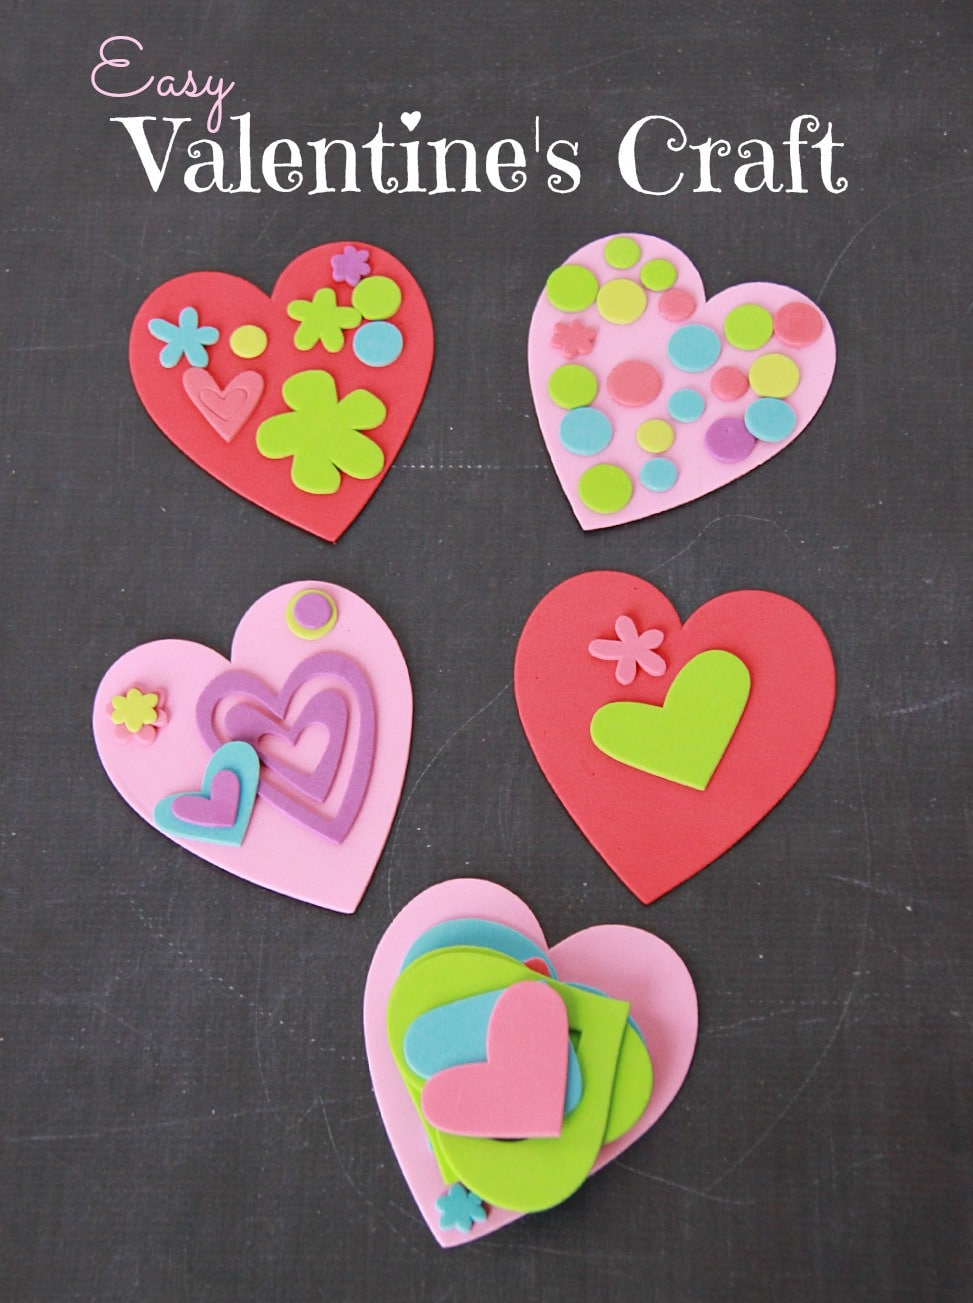 Kid's valentine's crafts